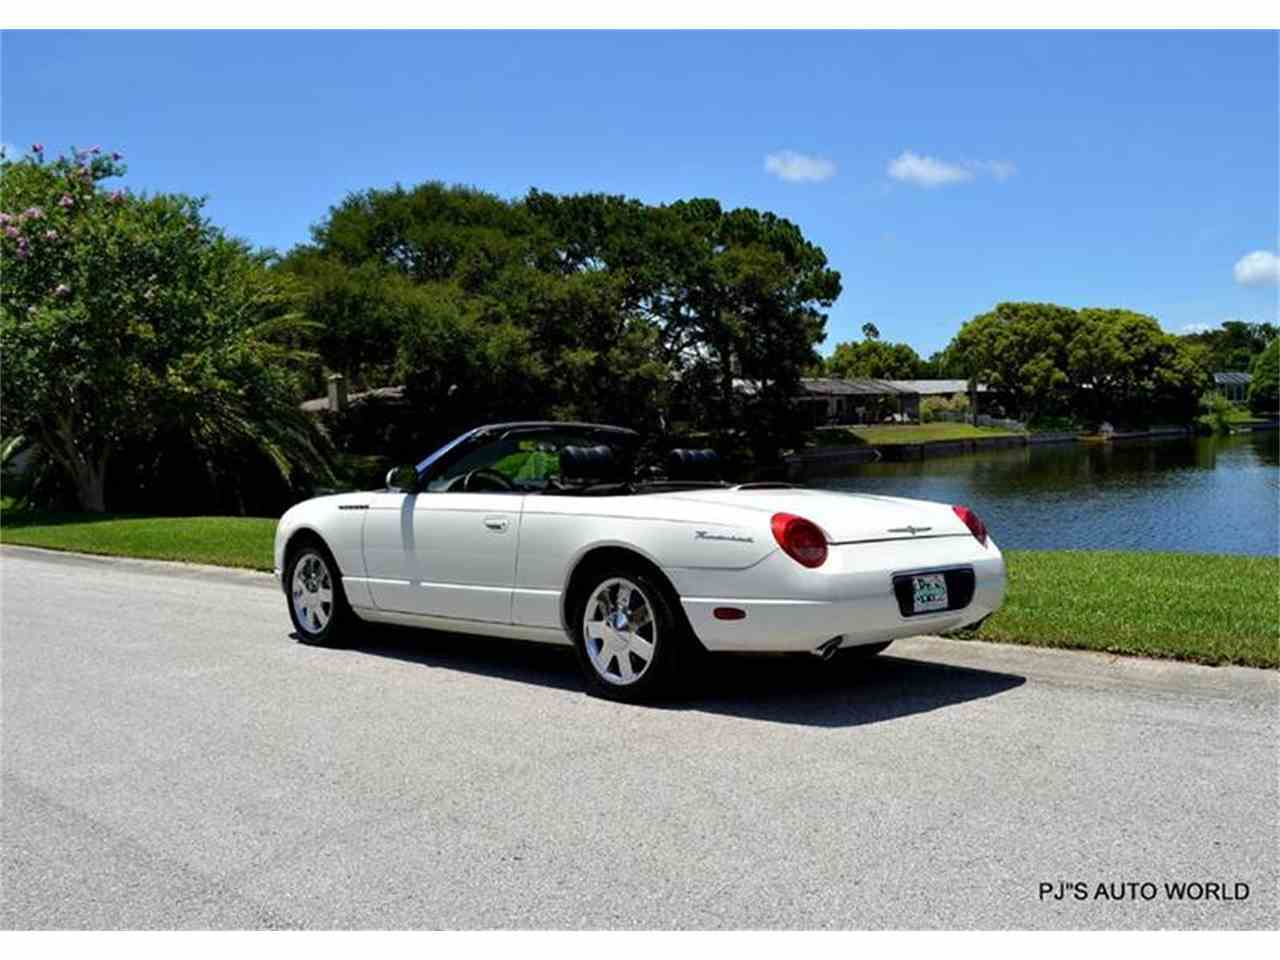 Large Picture of '02 Ford Thunderbird - $16,900.00 Offered by PJ's Auto World - IW29